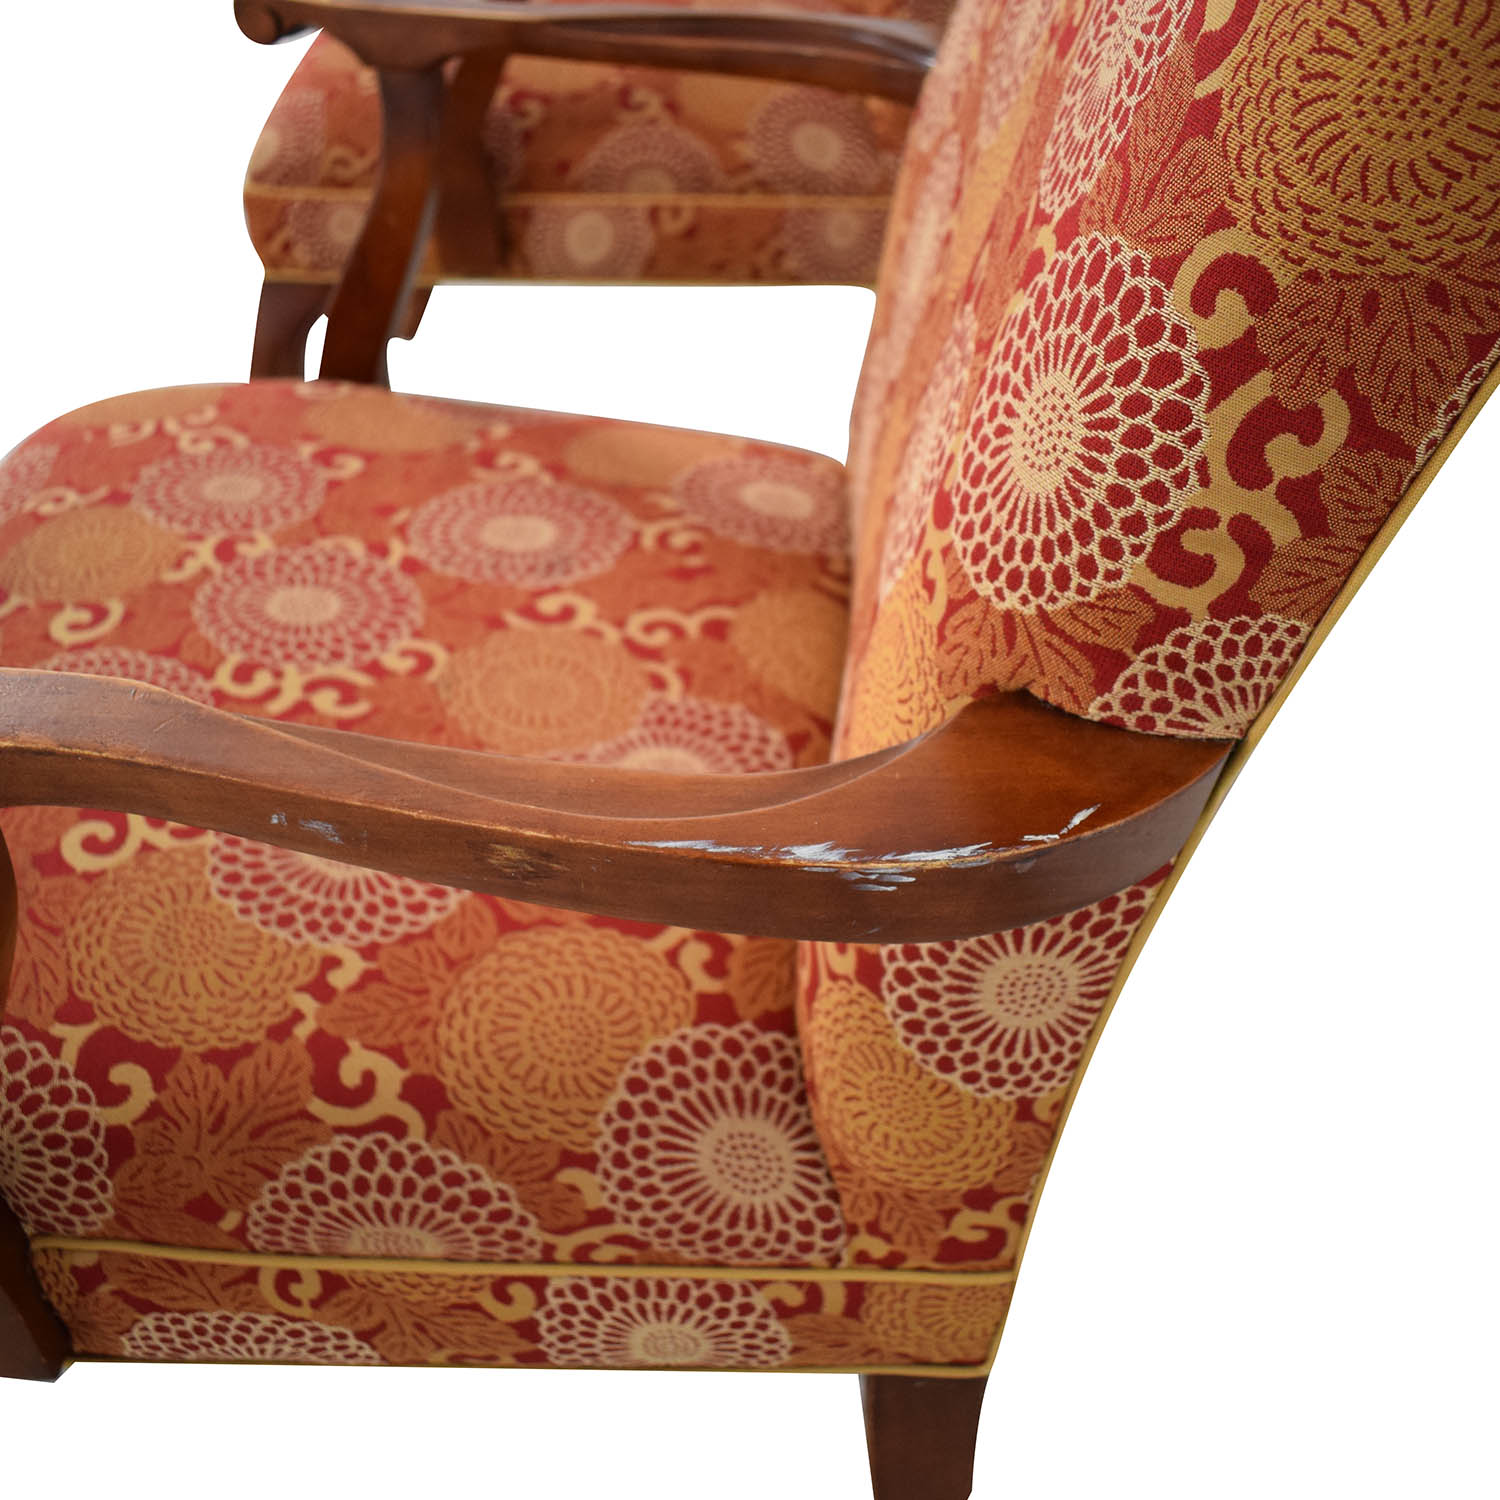 buy Ethan Allen Patterned Armchairs Ethan Allen Chairs